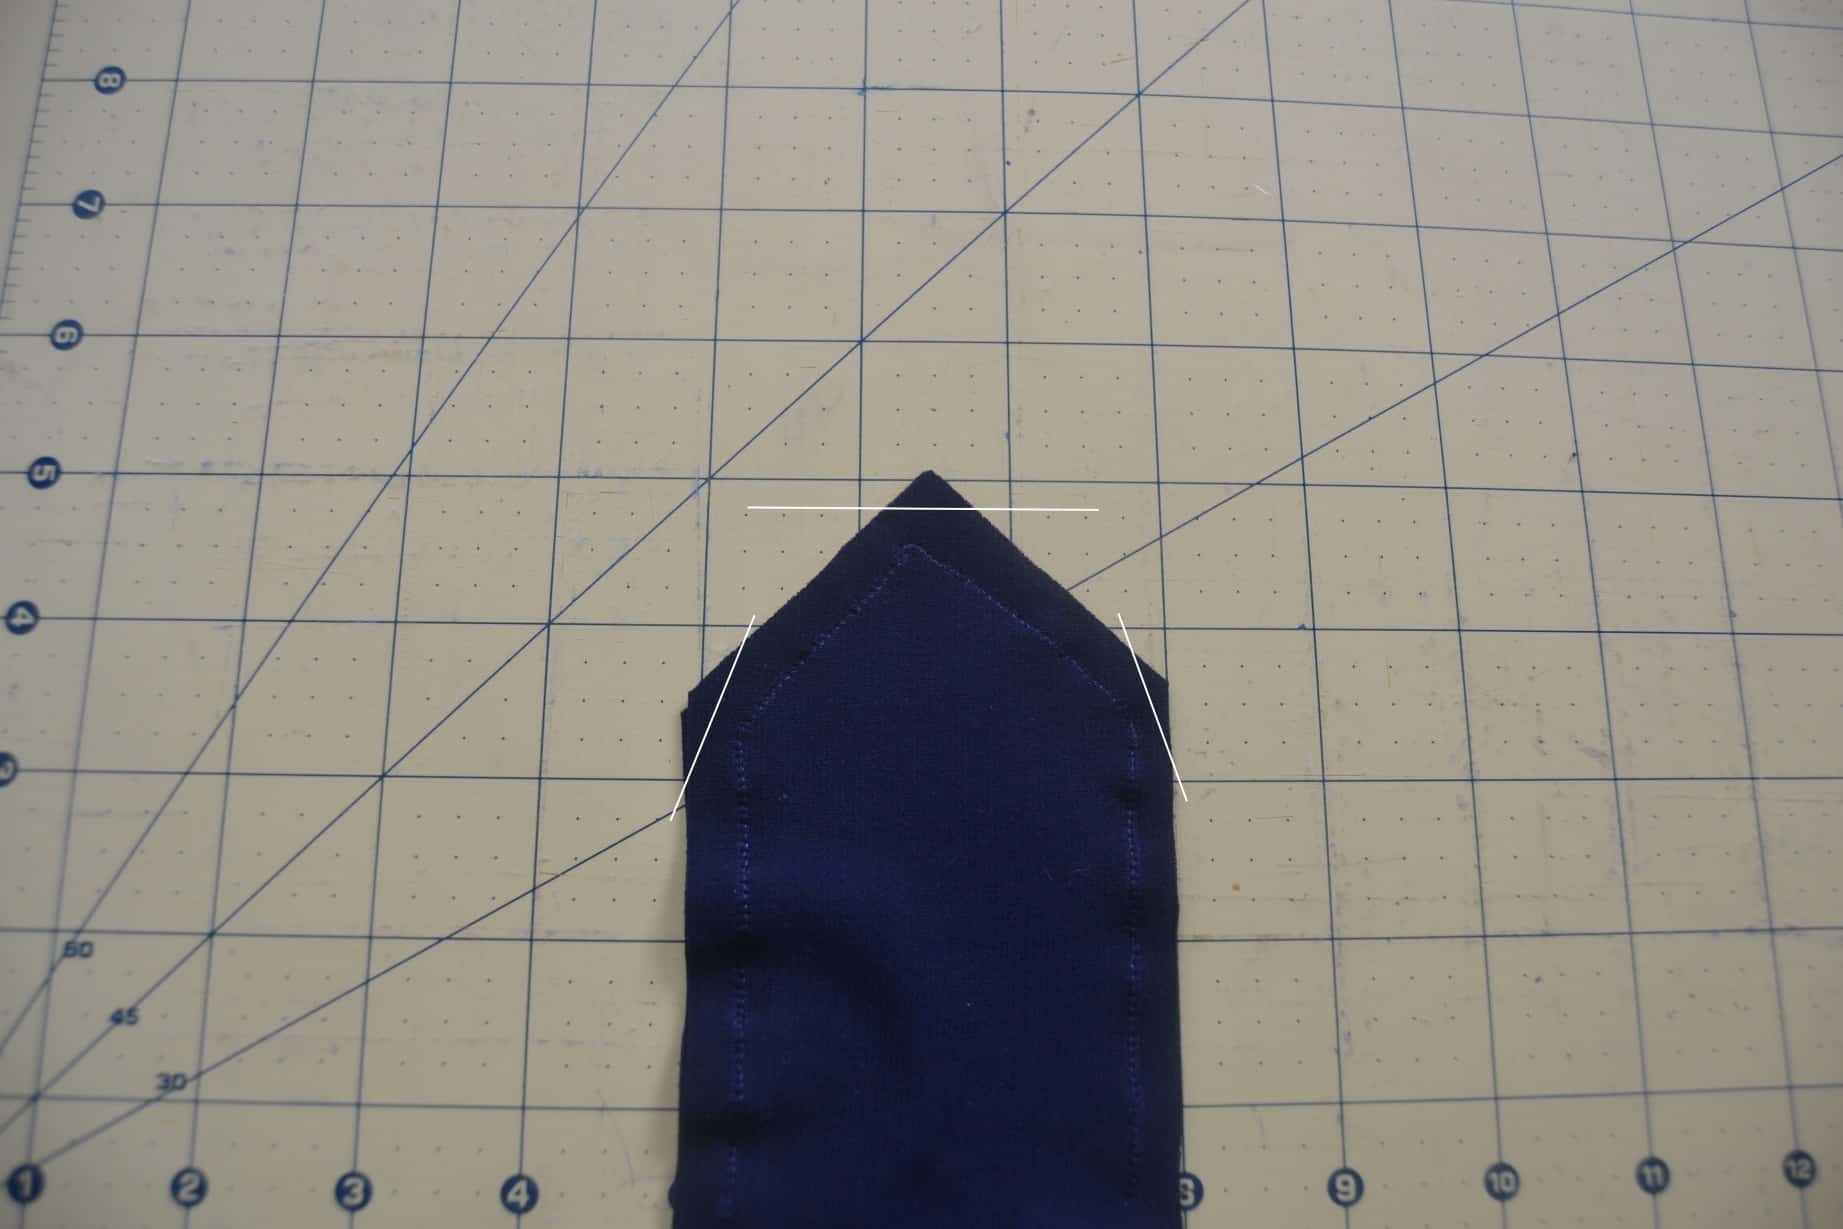 lines drawn across the end of the points to show how to trim down the excess fabric at the corners